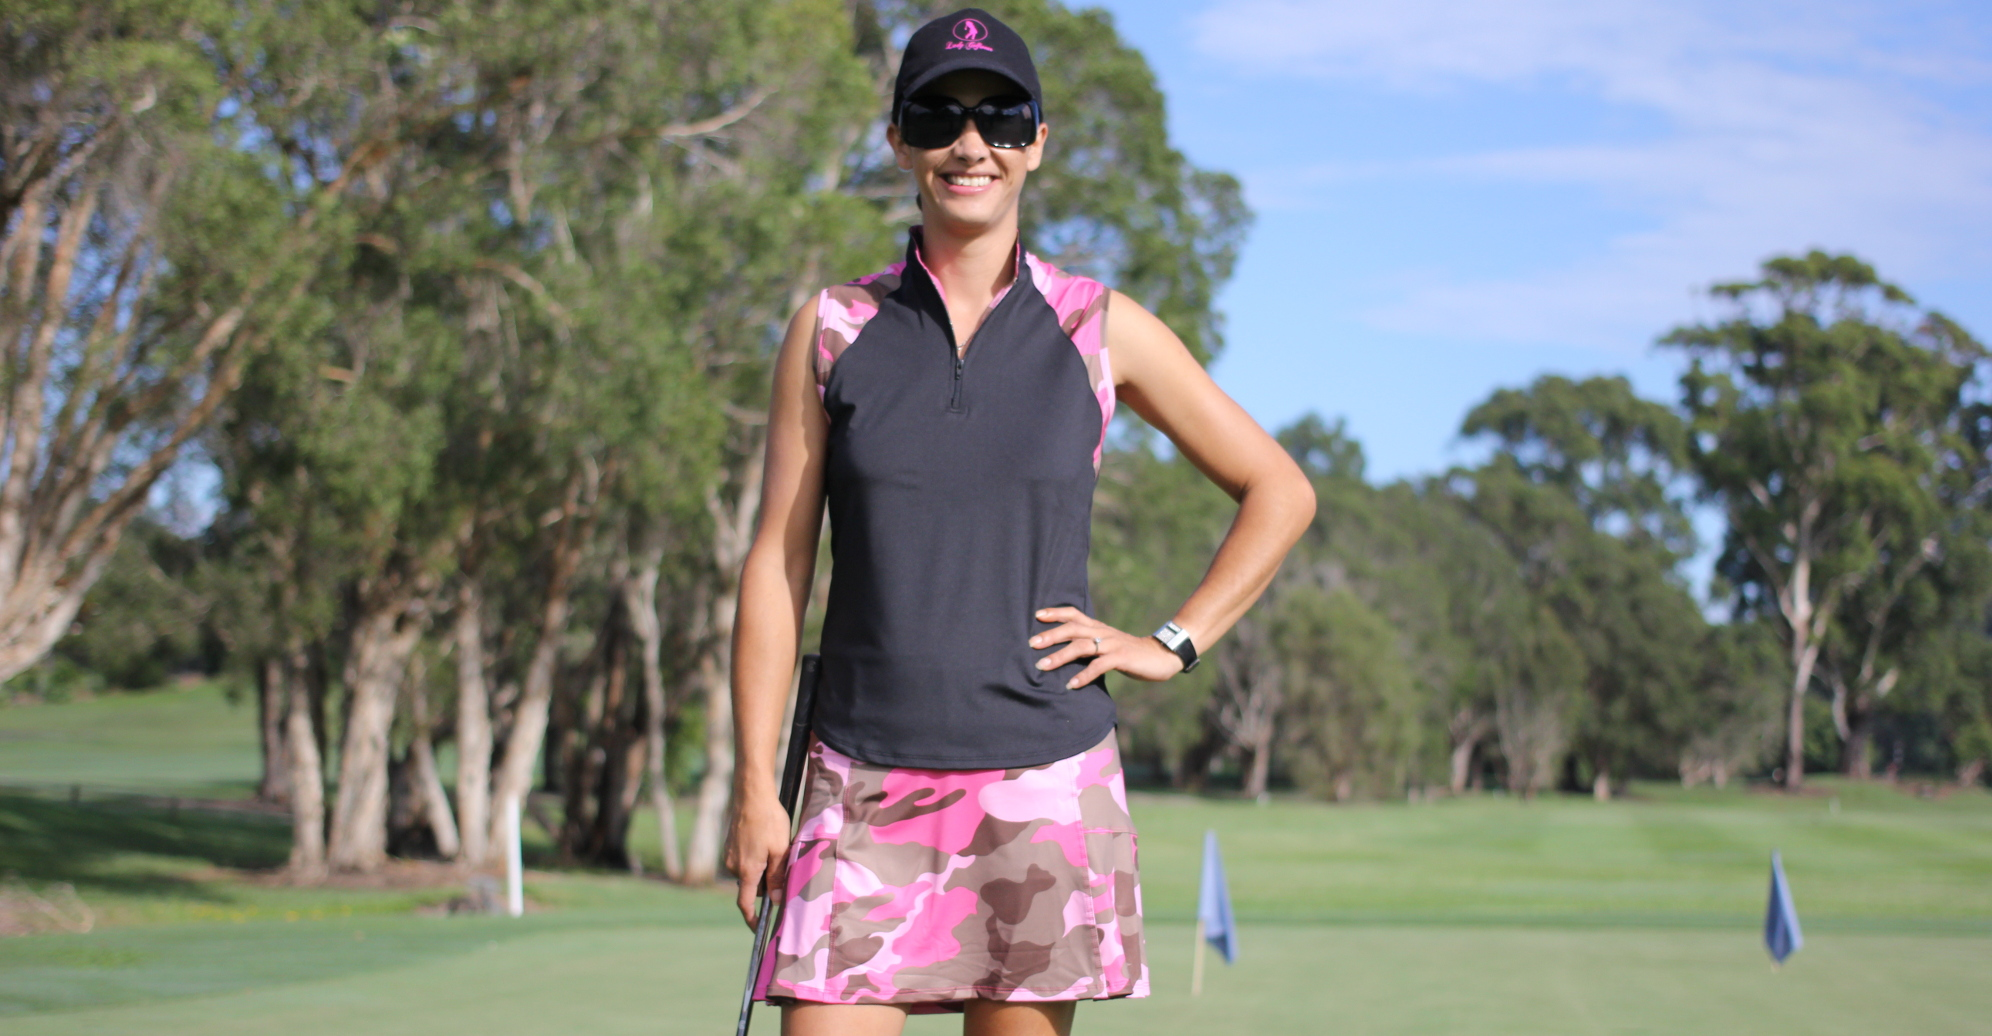 website-kim-in-black-golf-outfit-with-mirage-print-skort.jpg